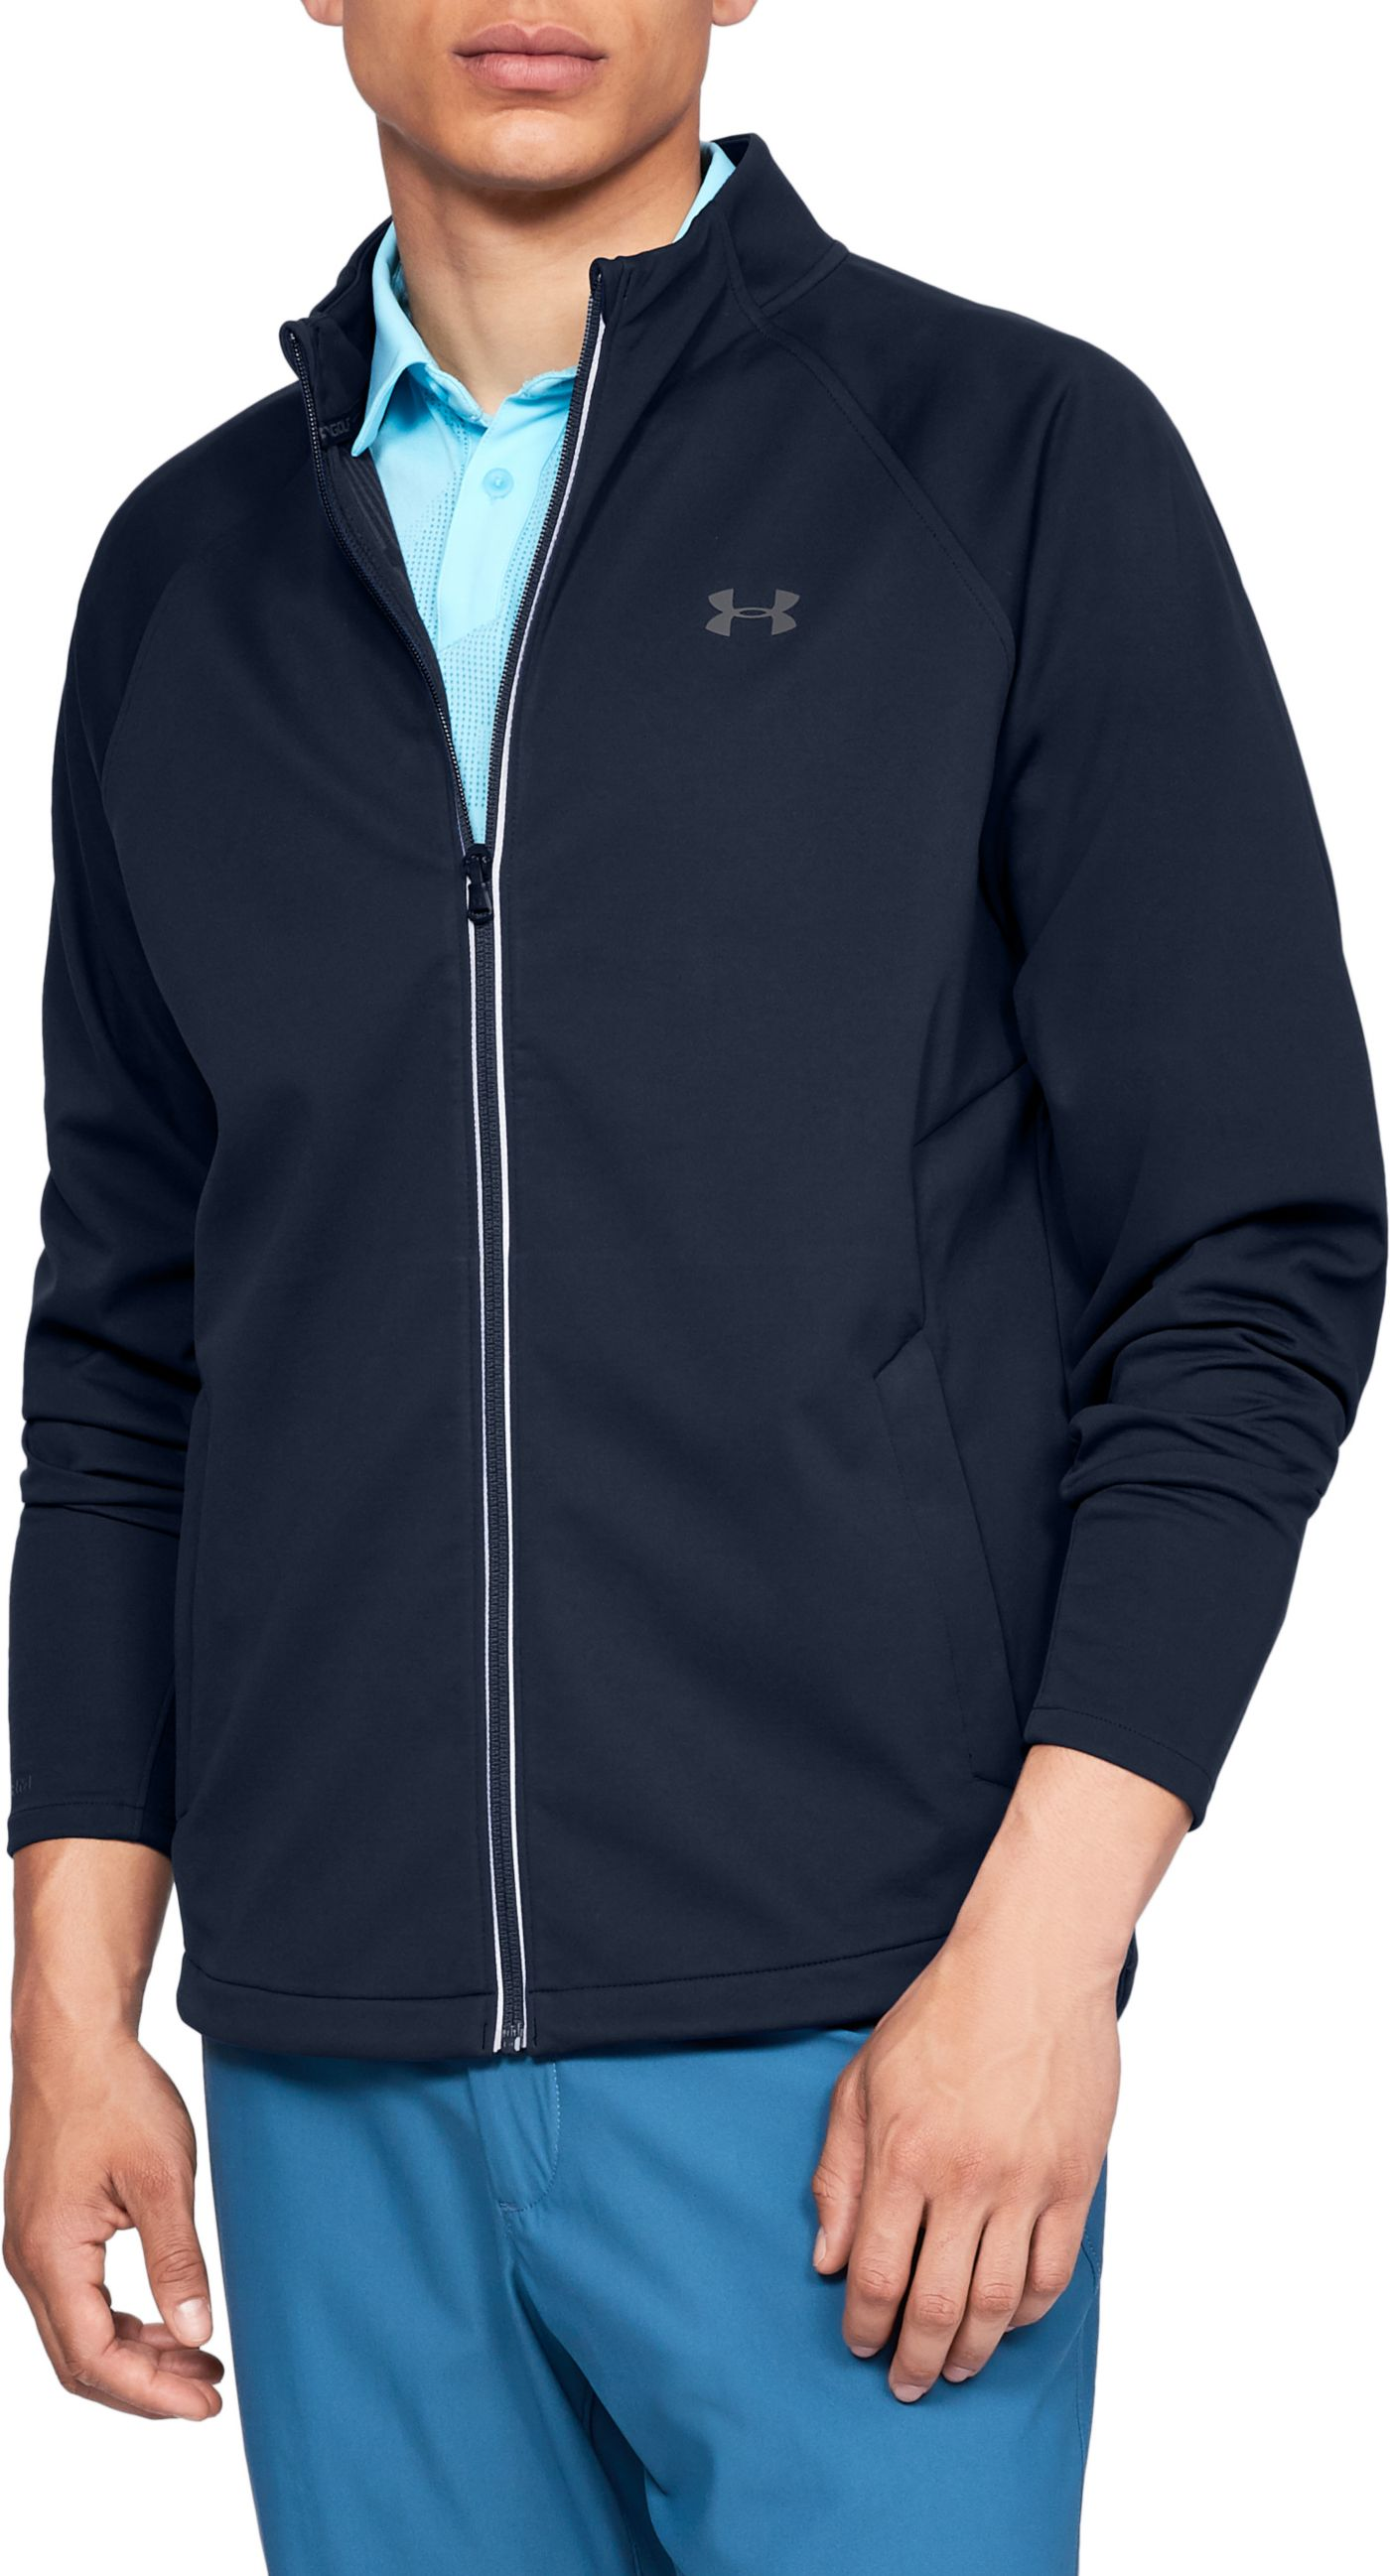 Under Armour Men's Storm Elements Golf Jacket